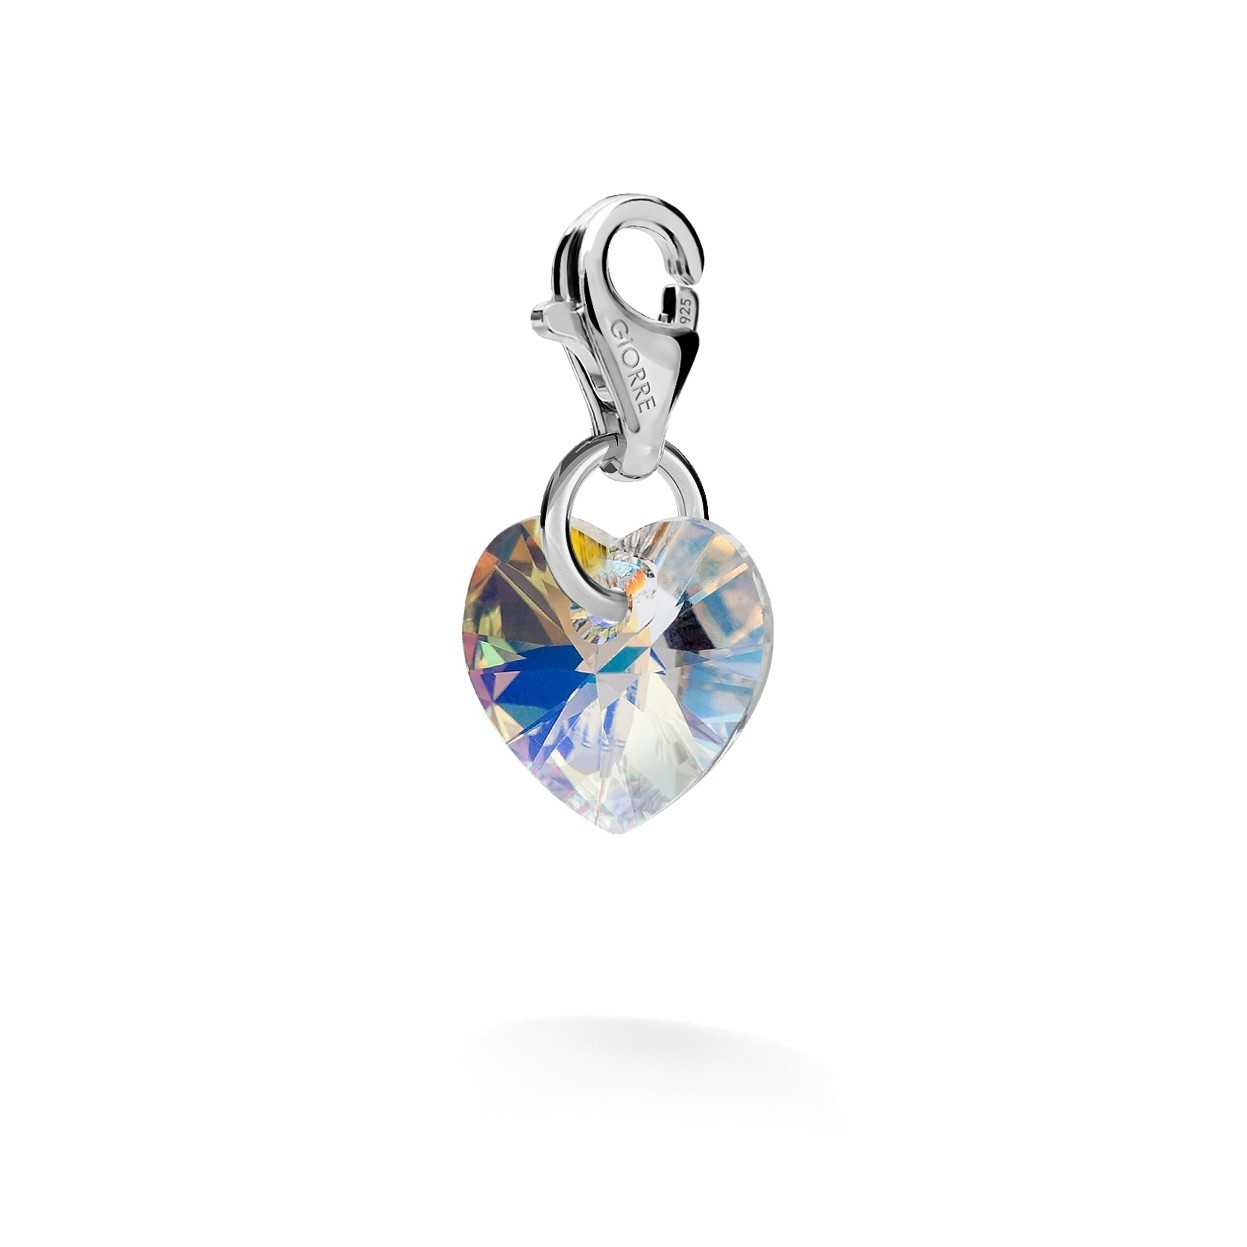 CHARM 47, SWAROVSKI 6228 MM 10 CRYSTAL, STERLING SILVER (925) RHODIUM OR GOLD PLATED